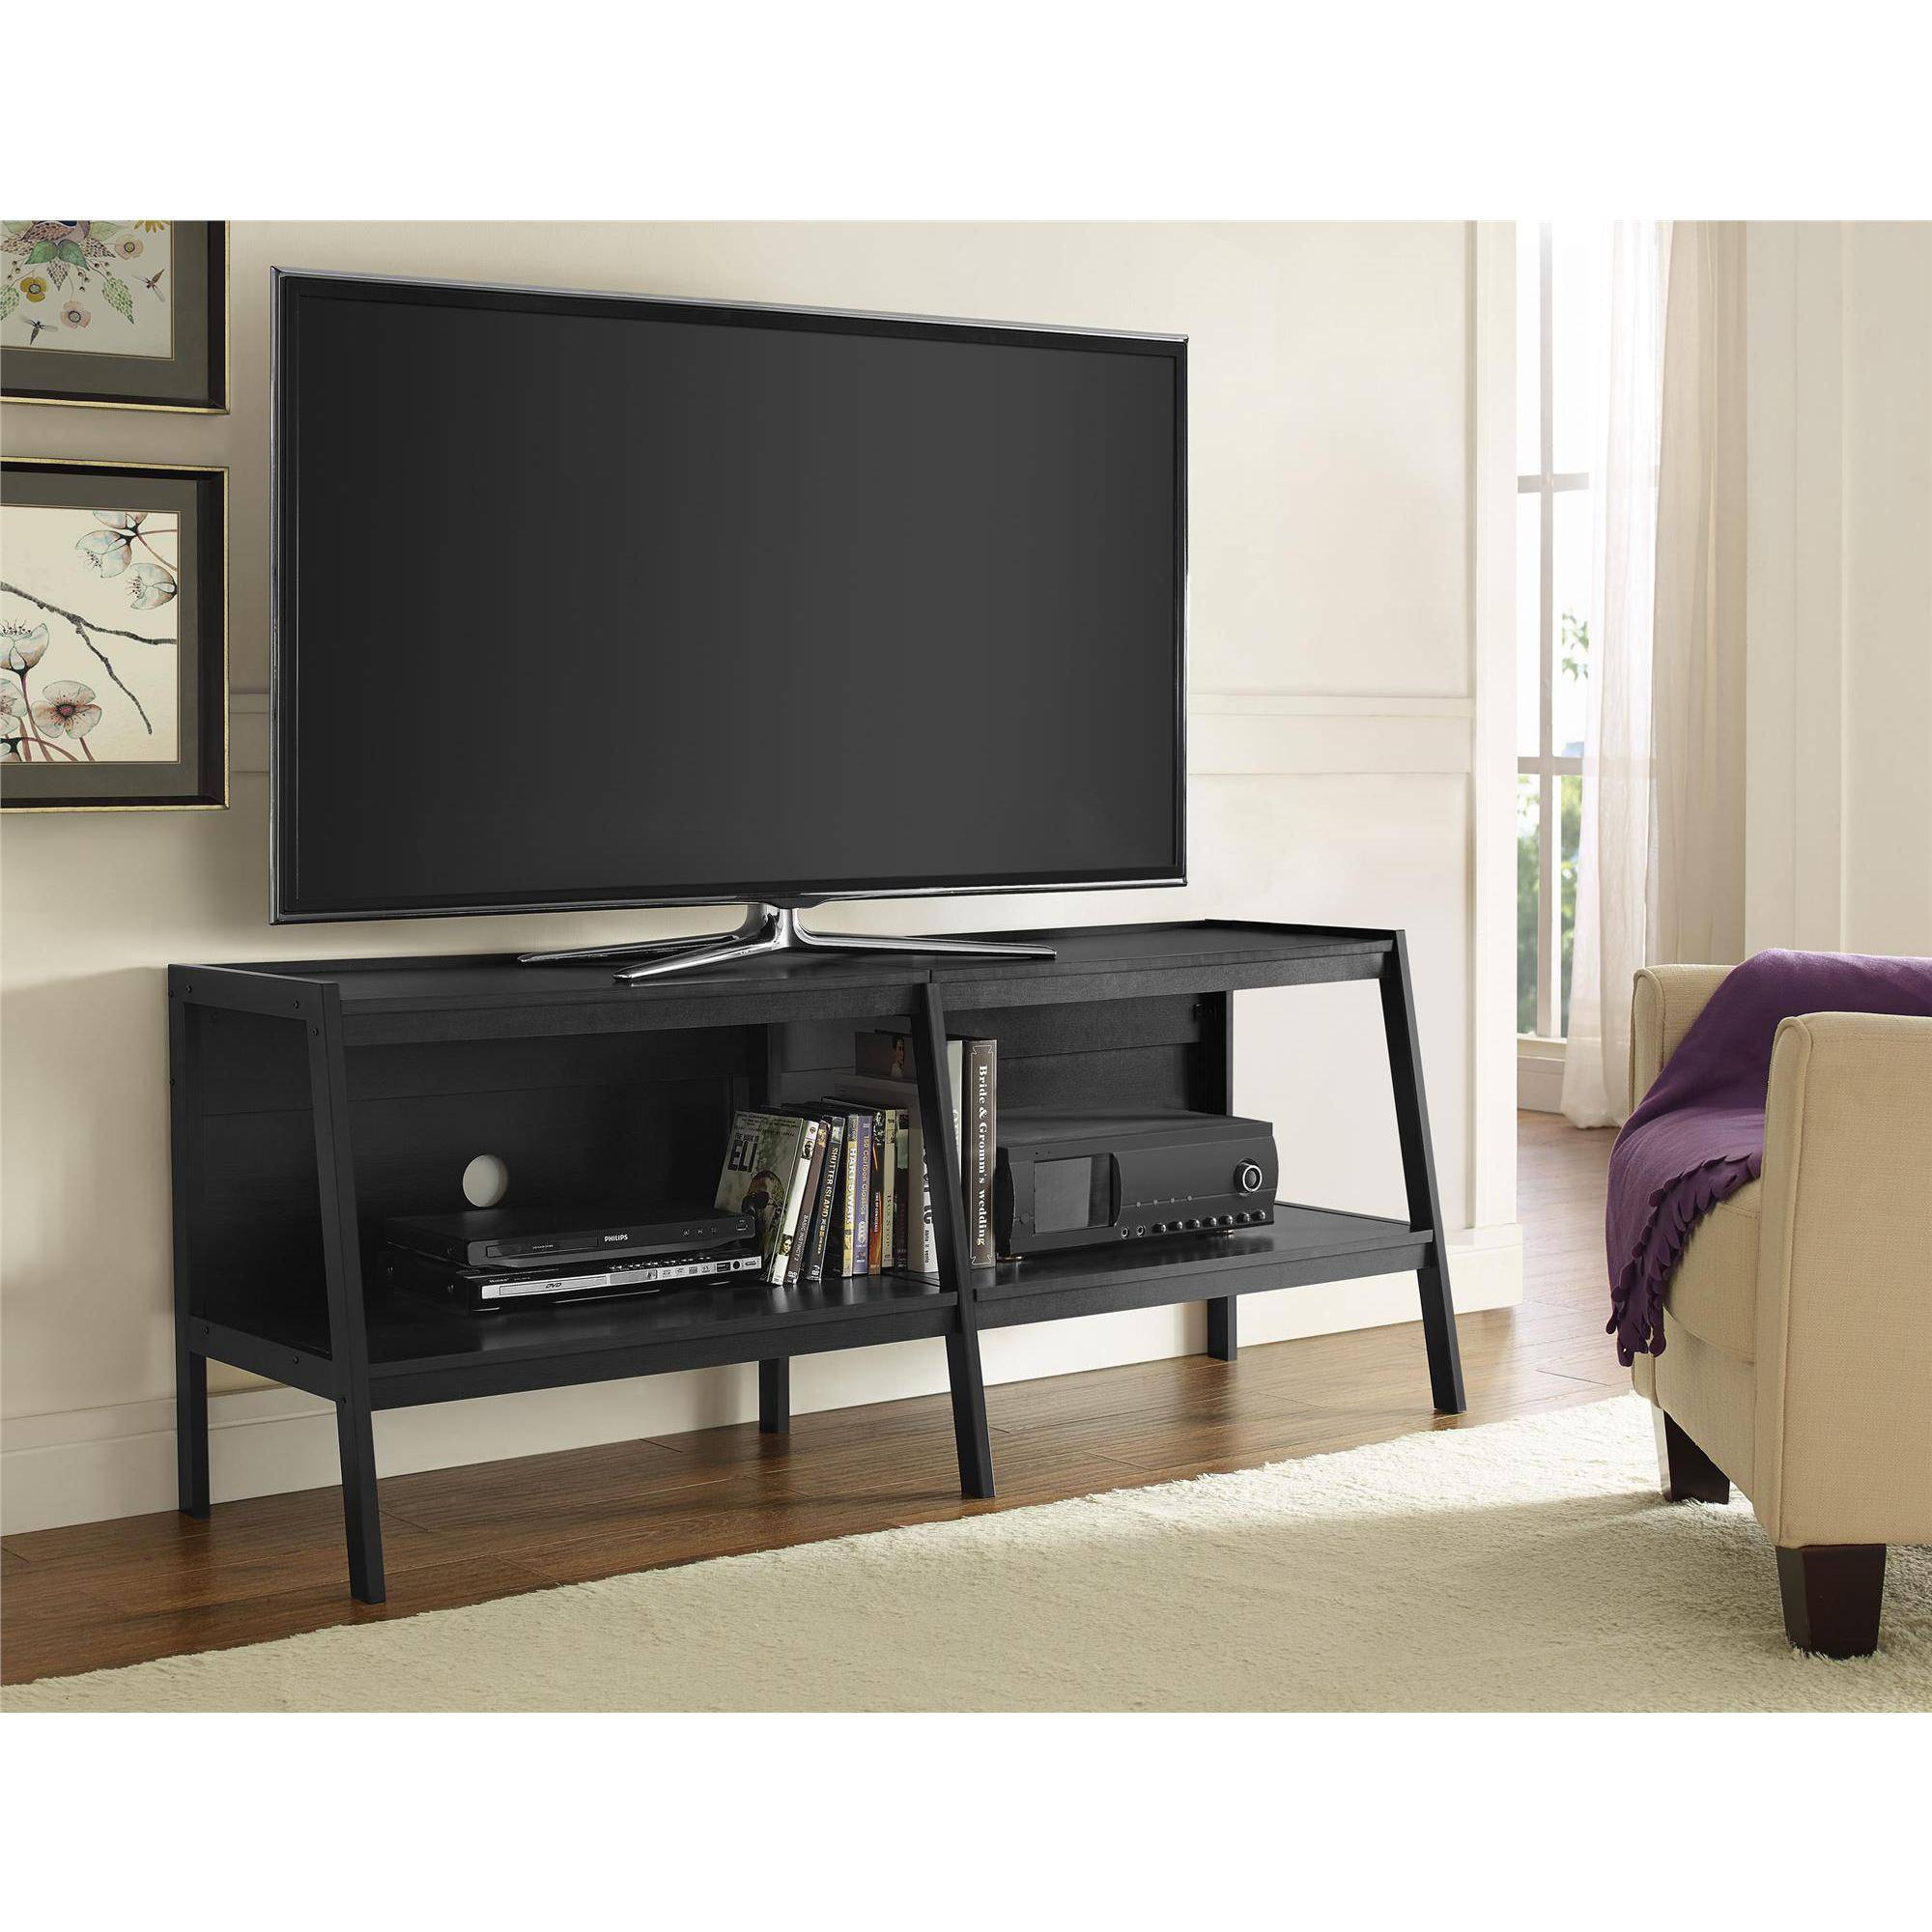 "Ameriwood Home Lawrence 60"" Ladder TV Stand, Black by Ameriwood"